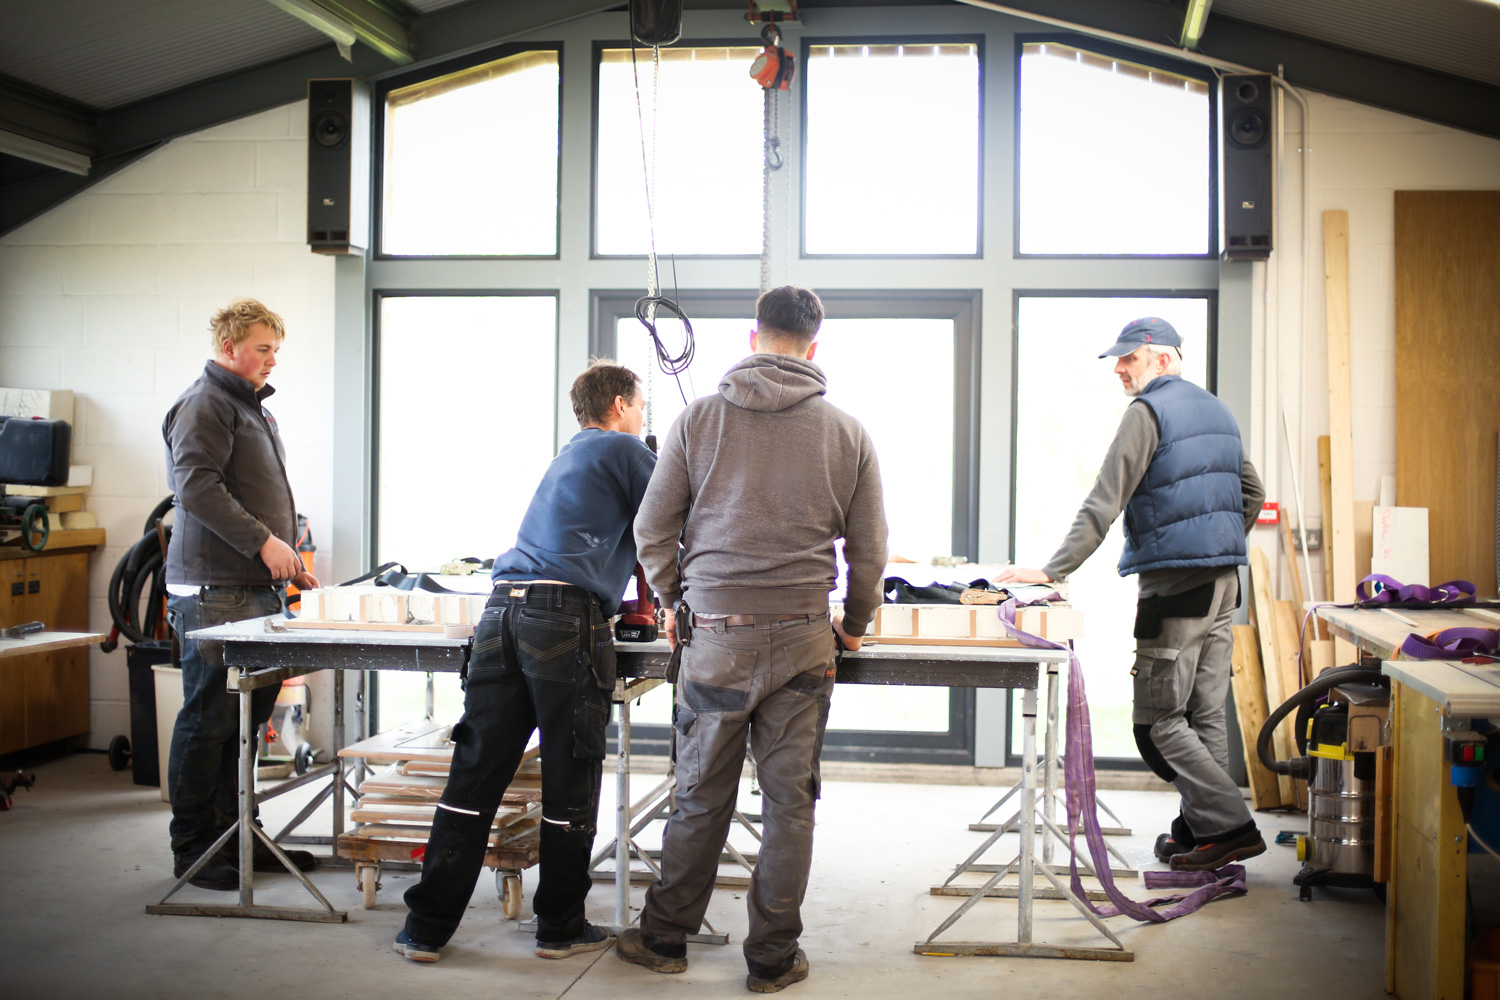 john-tinney-workshop-team.jpg